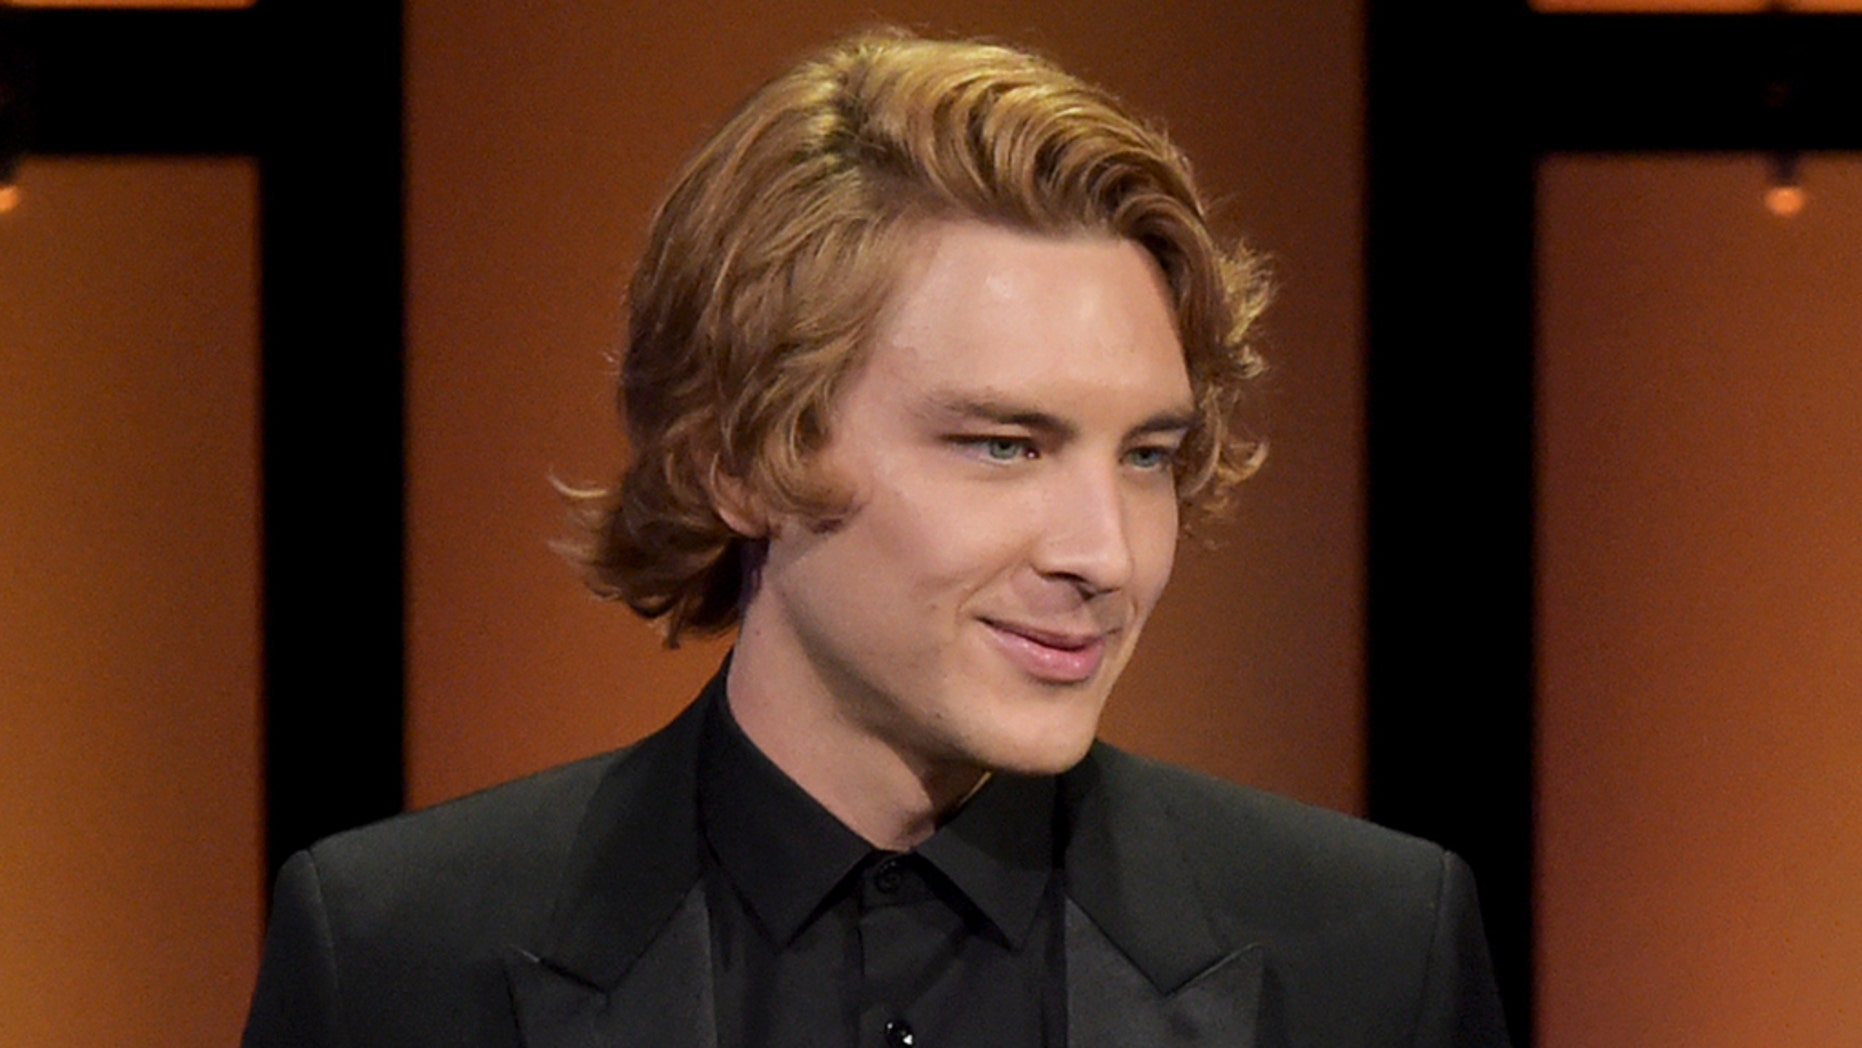 Cody Fern speaks at the Hollywood Foreign Press Association Grants Banquet at The Beverly Hilton hotel on Thursday, Aug. 9, 2018, in Beverly Hills, Calif.